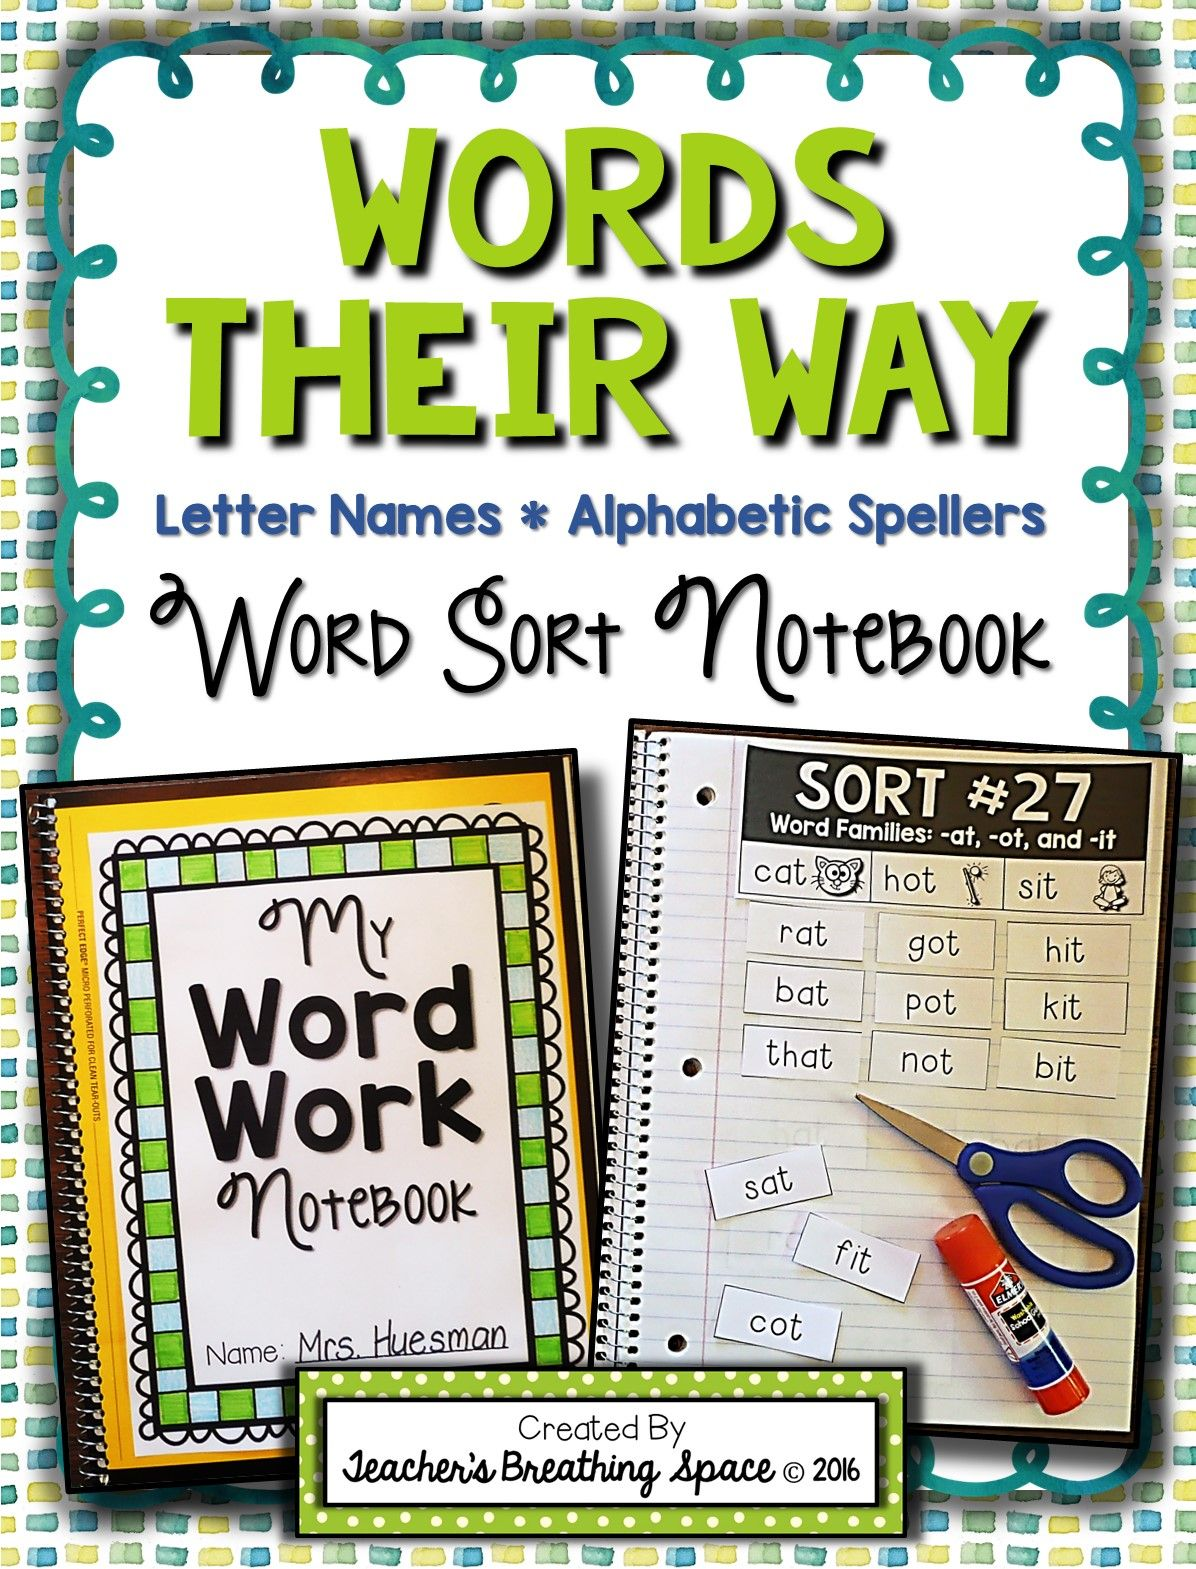 Words Their Way Letter Name Alphabetic Word Sorting Notebook